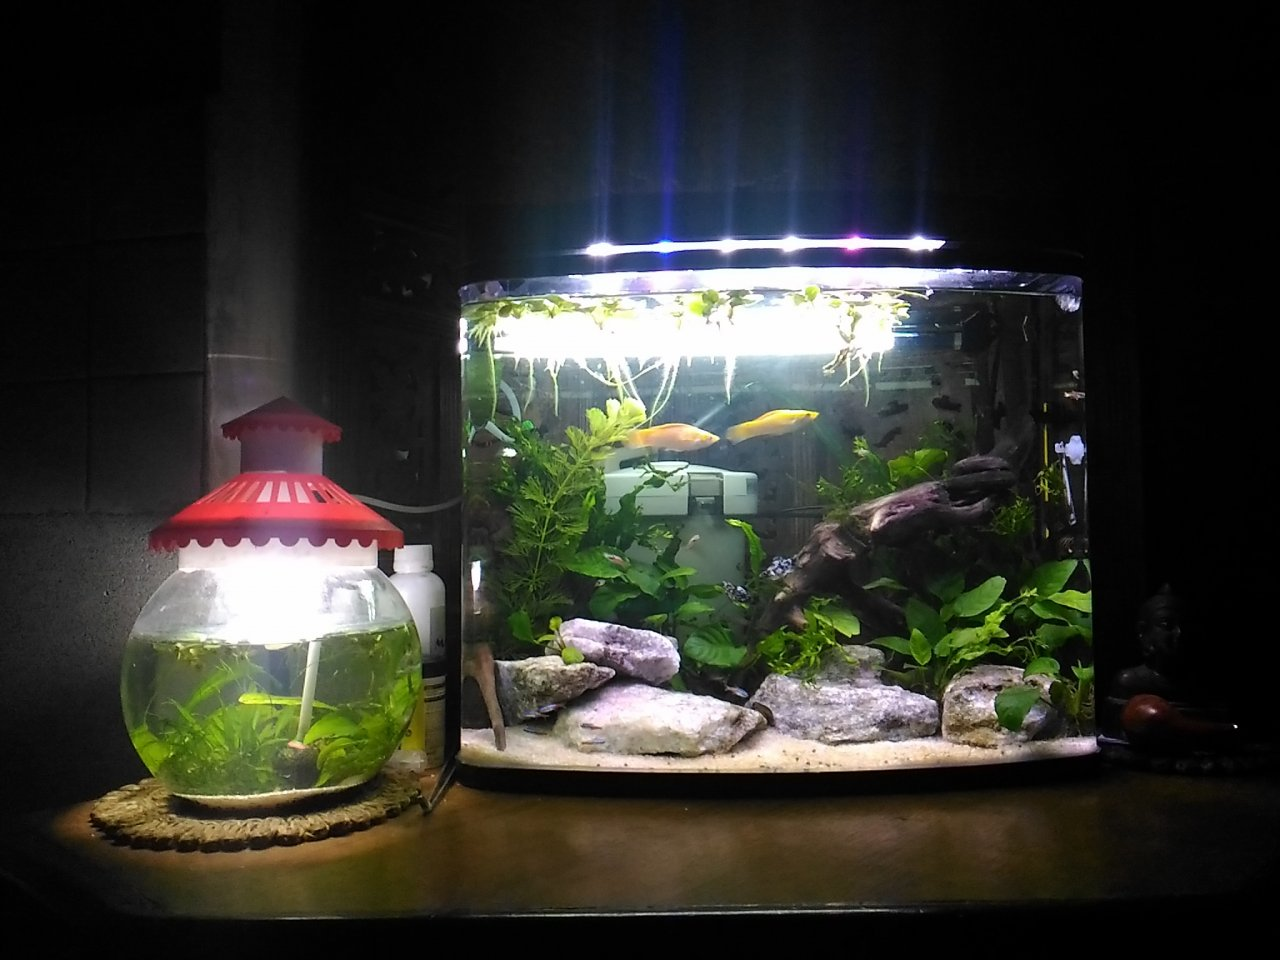 stocking ideas for planted pico and nano tanks 20 gallons or less my aquarium club. Black Bedroom Furniture Sets. Home Design Ideas